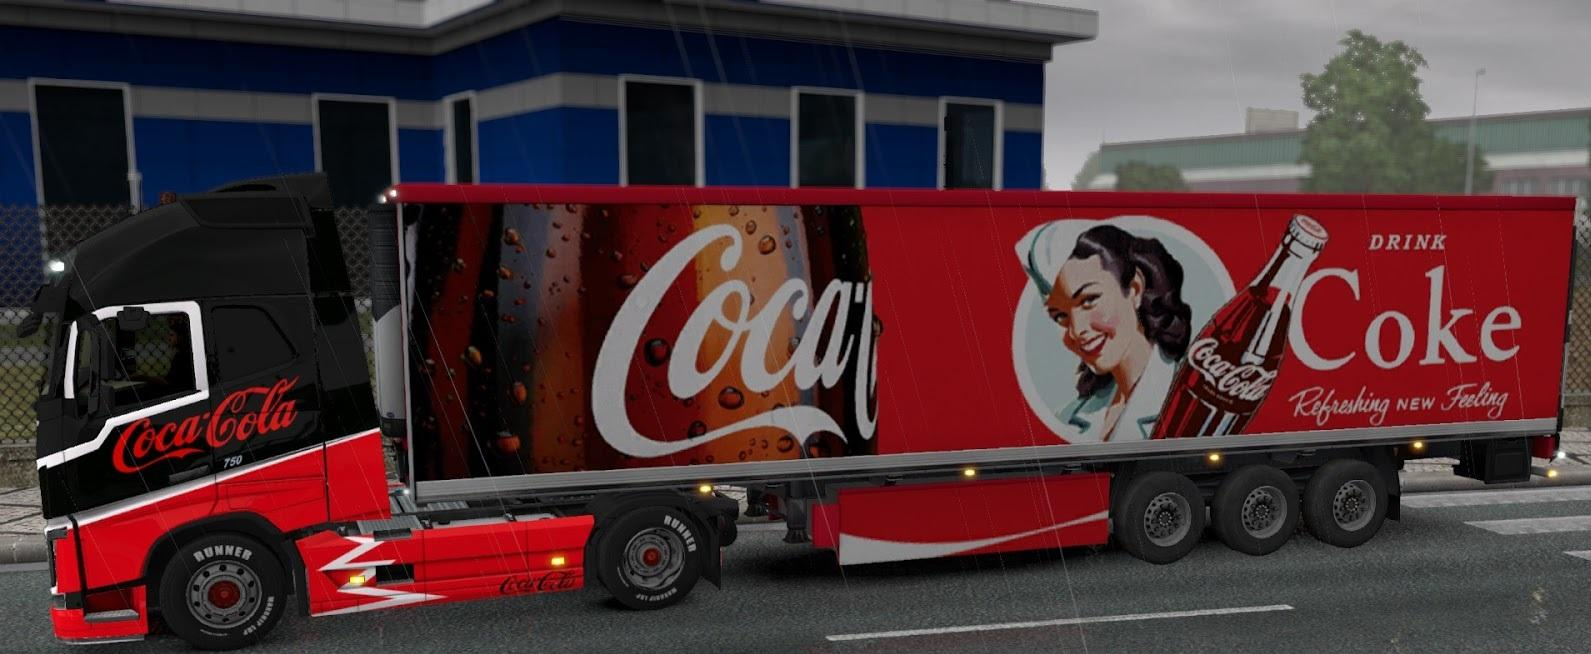 5525-coca-cola-pack-updated-for-volvo-2012_1